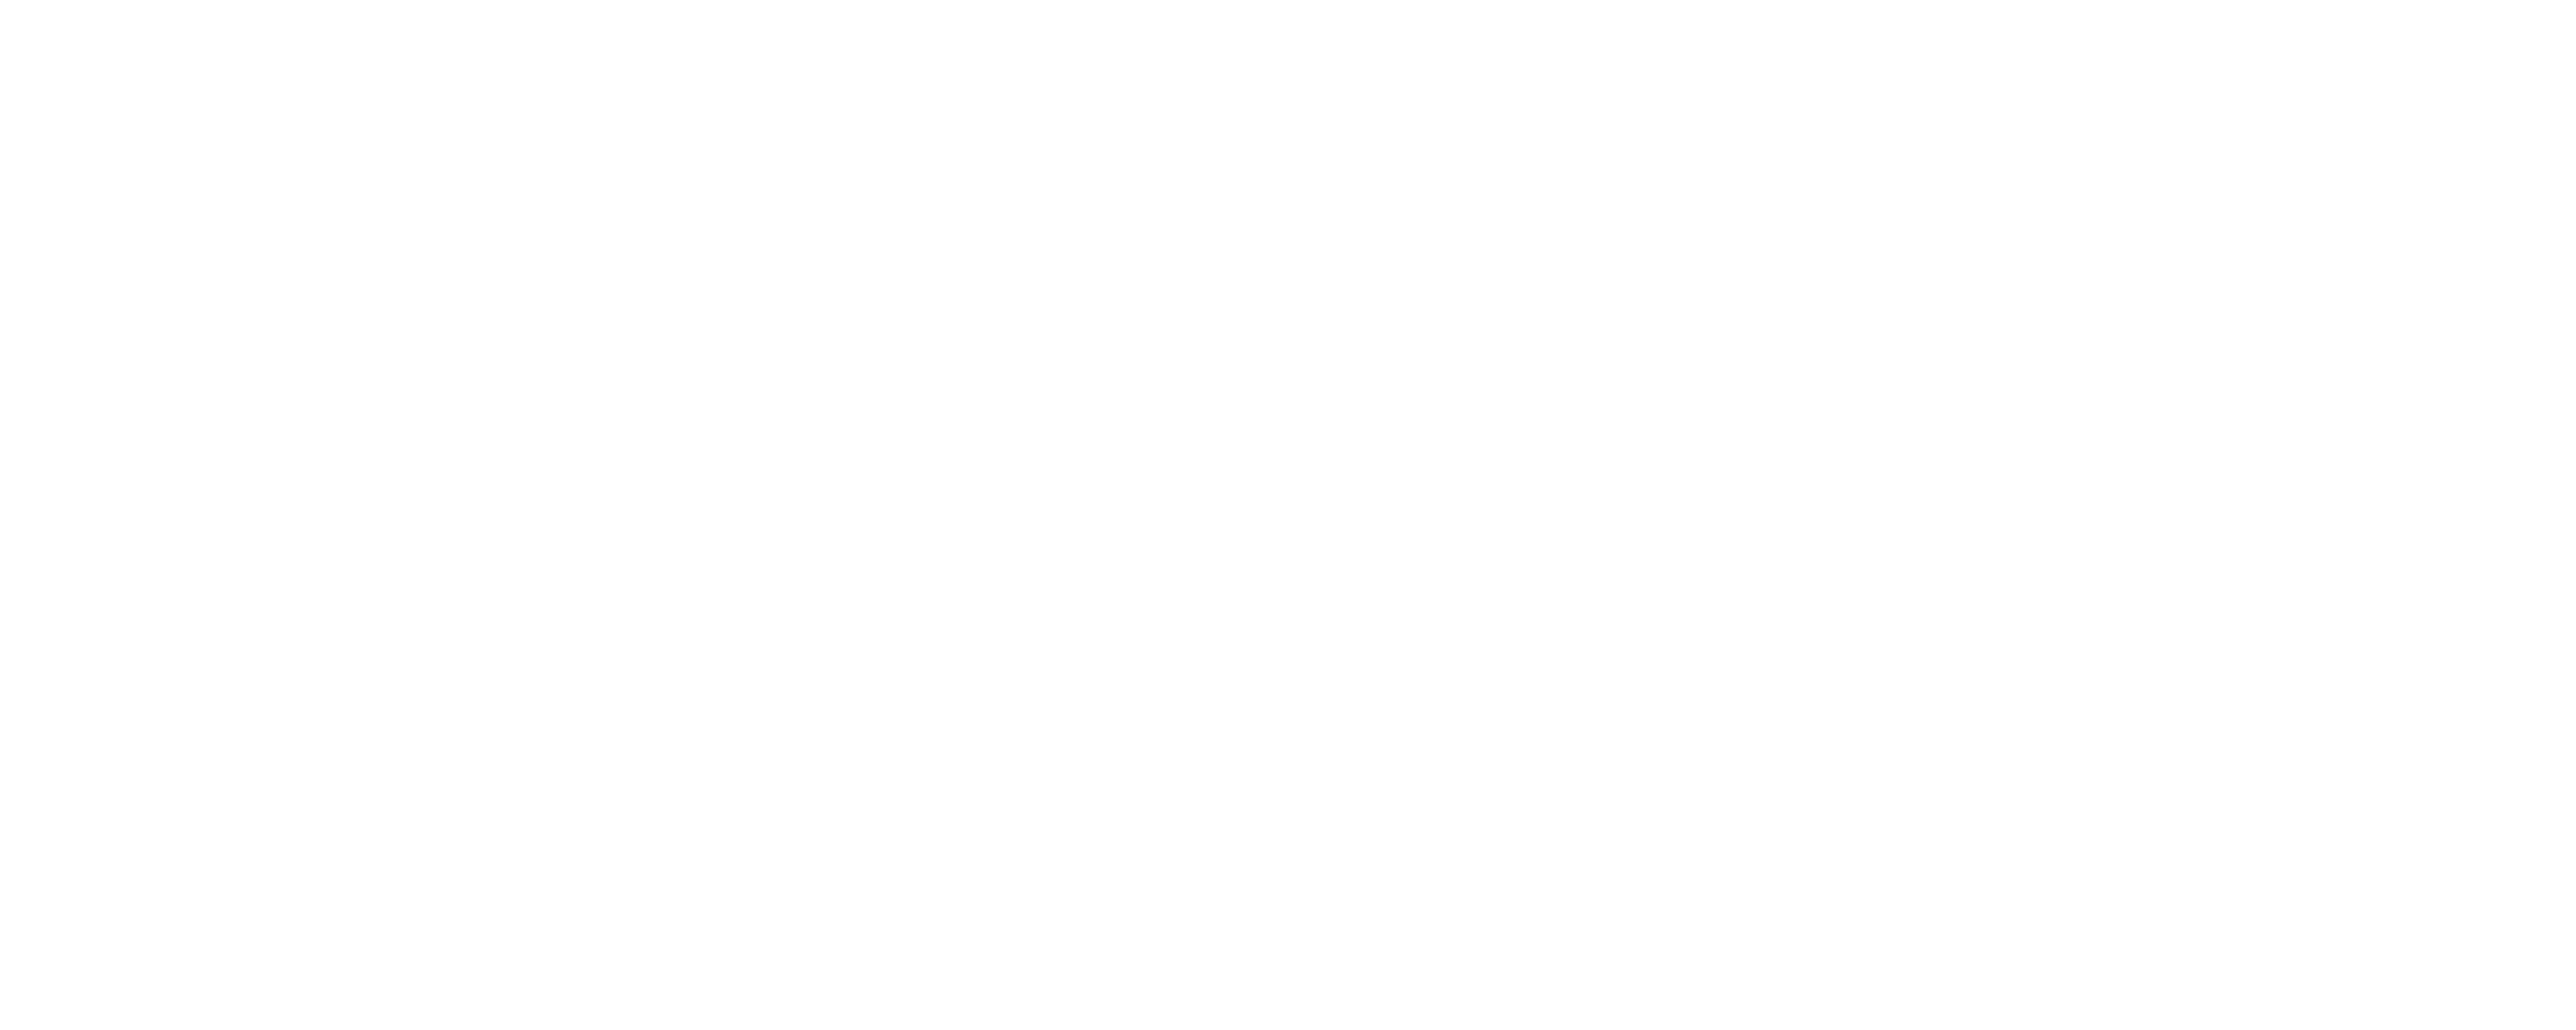 Dion Training logo - click to access the homepage of diontraining.com